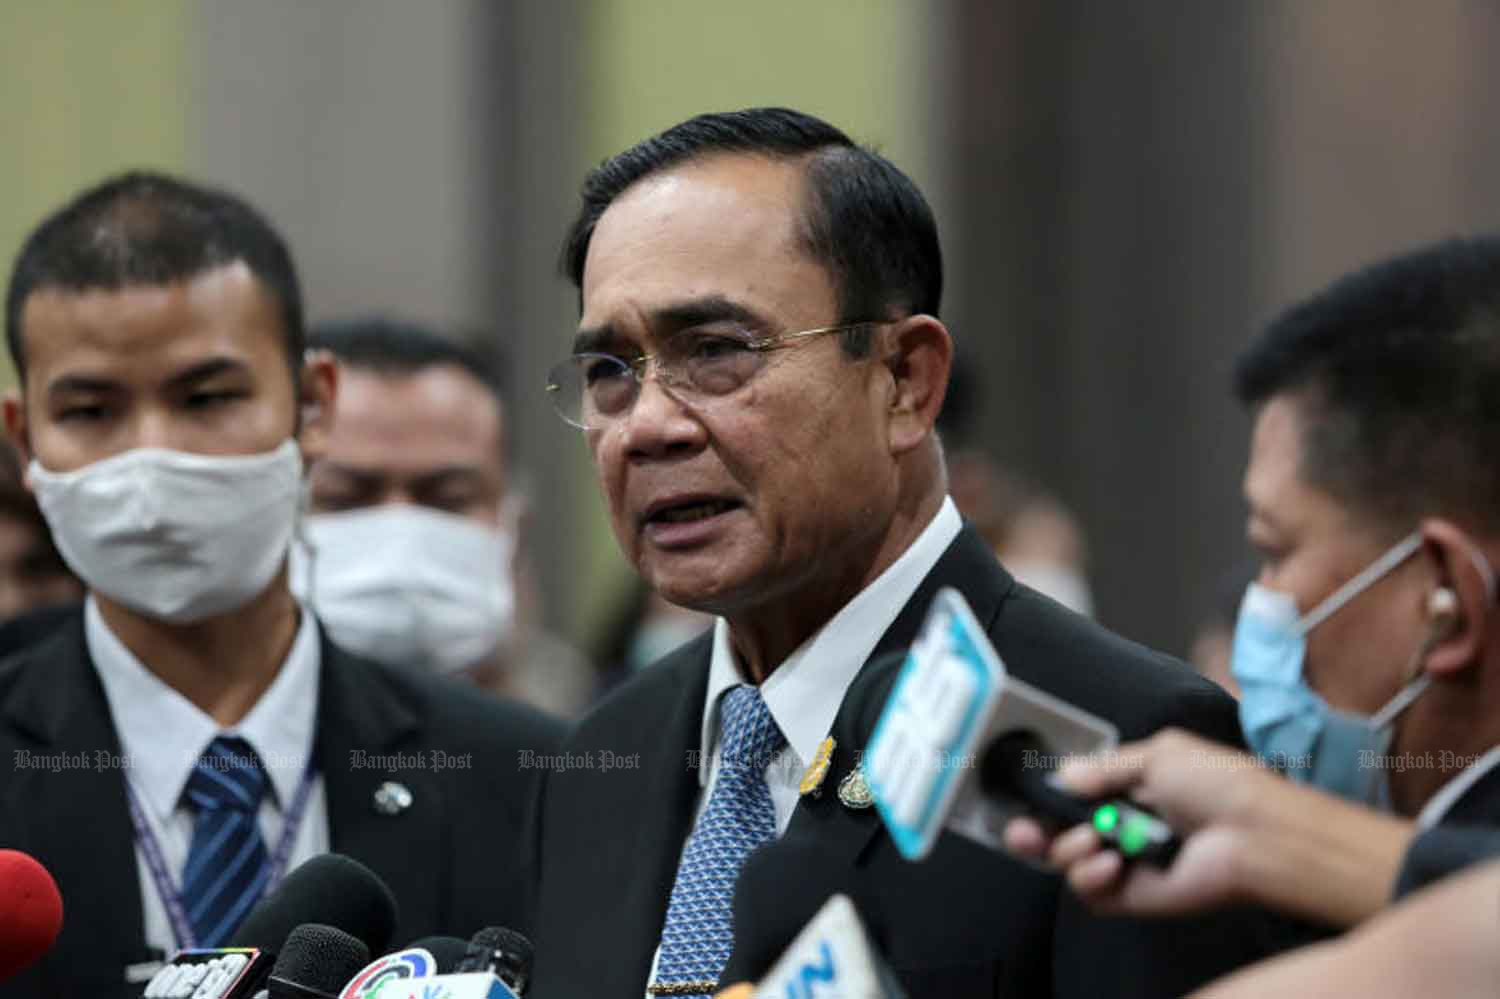 Prime Minister Prayut Chan-o-cha speaks to reporters in Nonthaburi province on Saturday. (Photo: Chanat Katanyu)